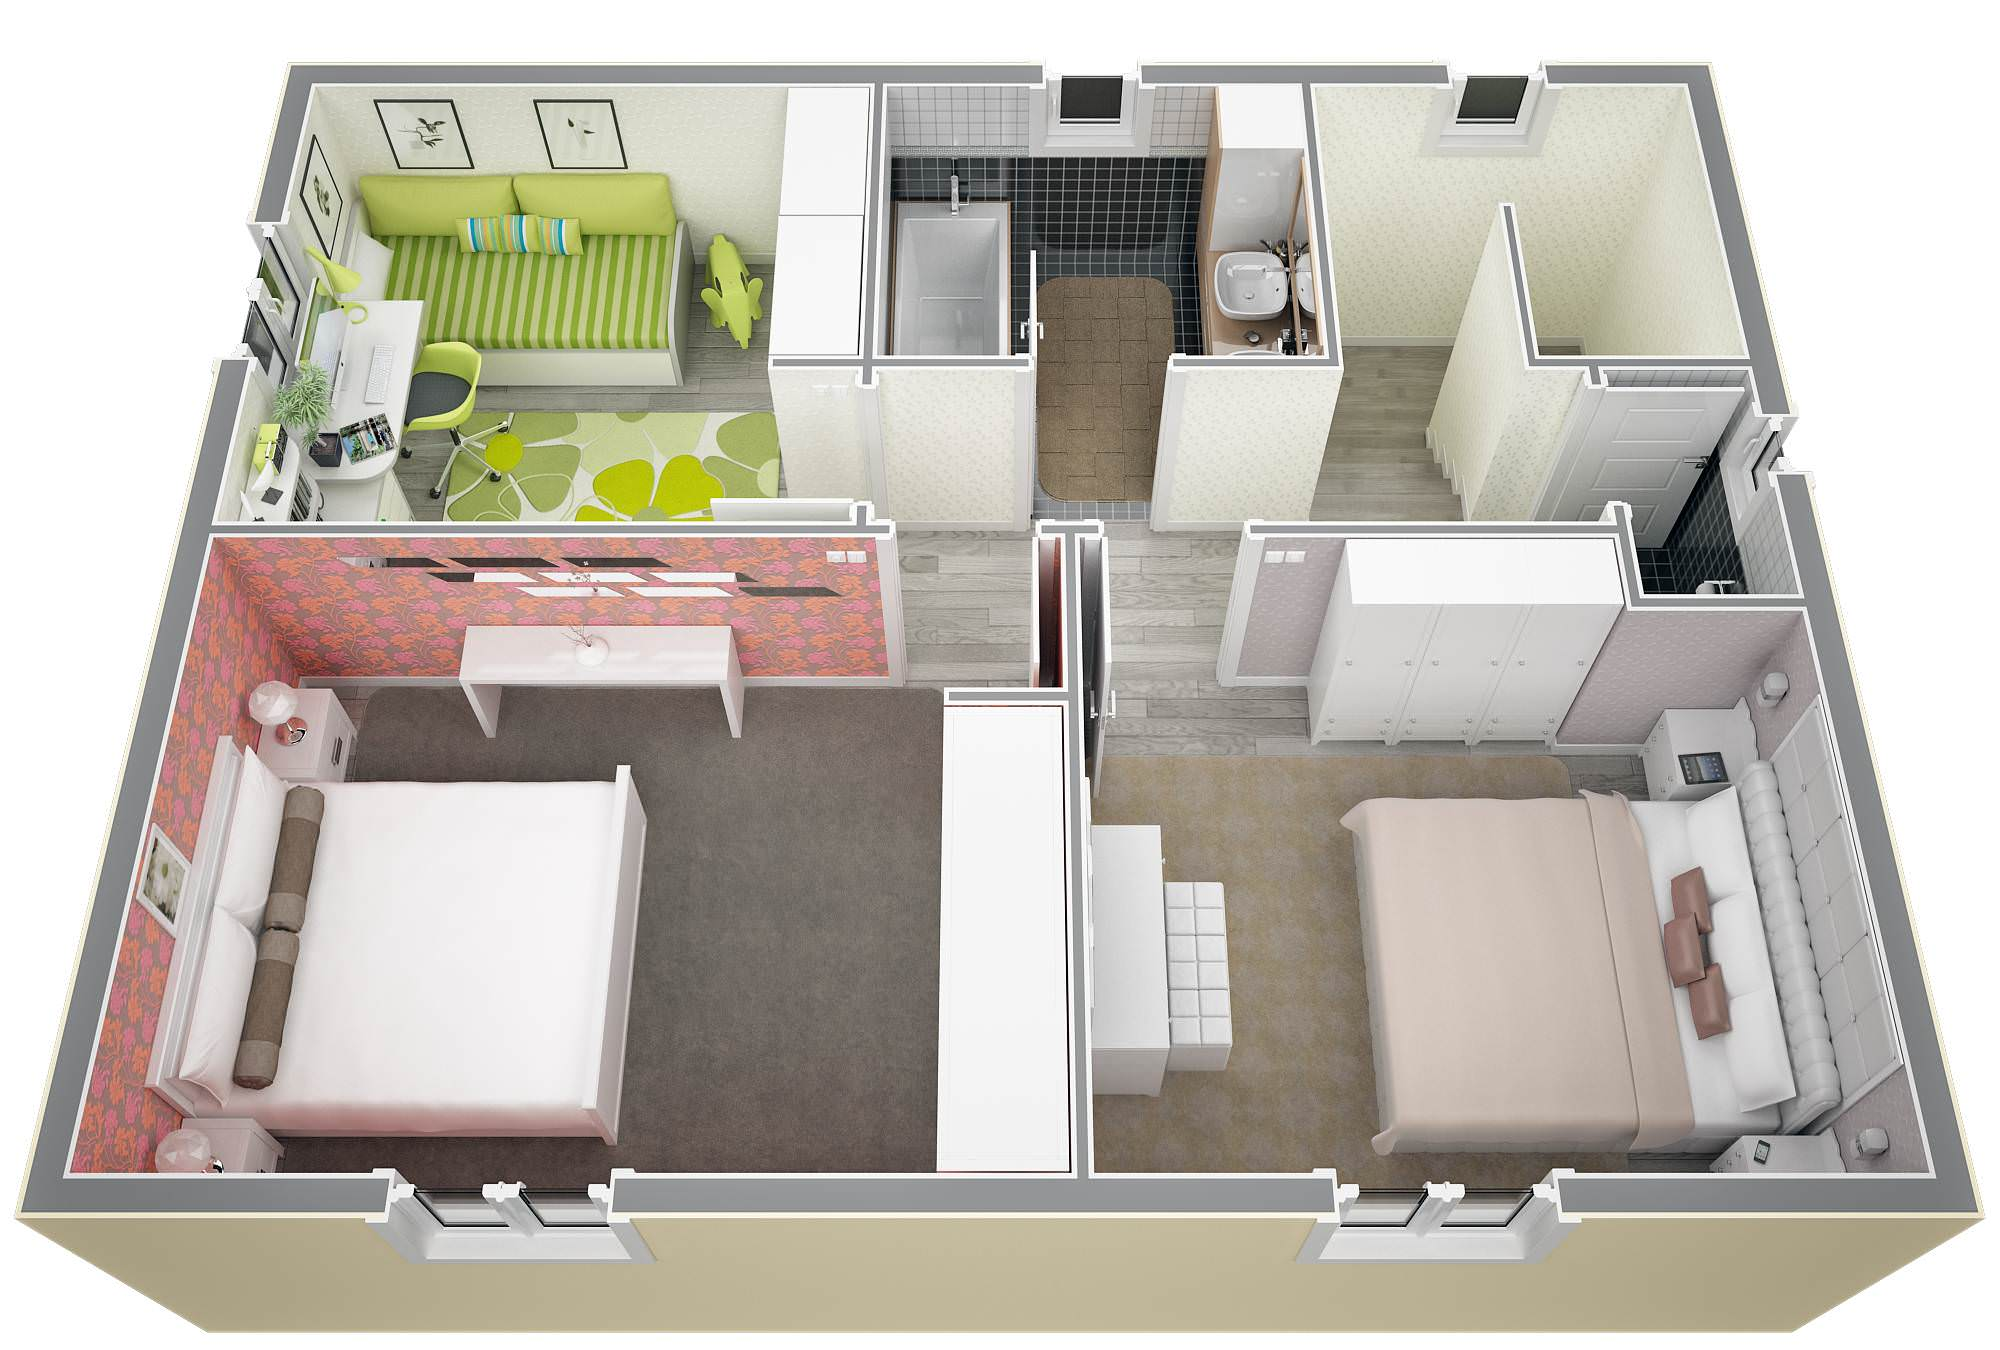 Maison 40m2 top maison for Plan de maison 2 chambres salon cuisine douche